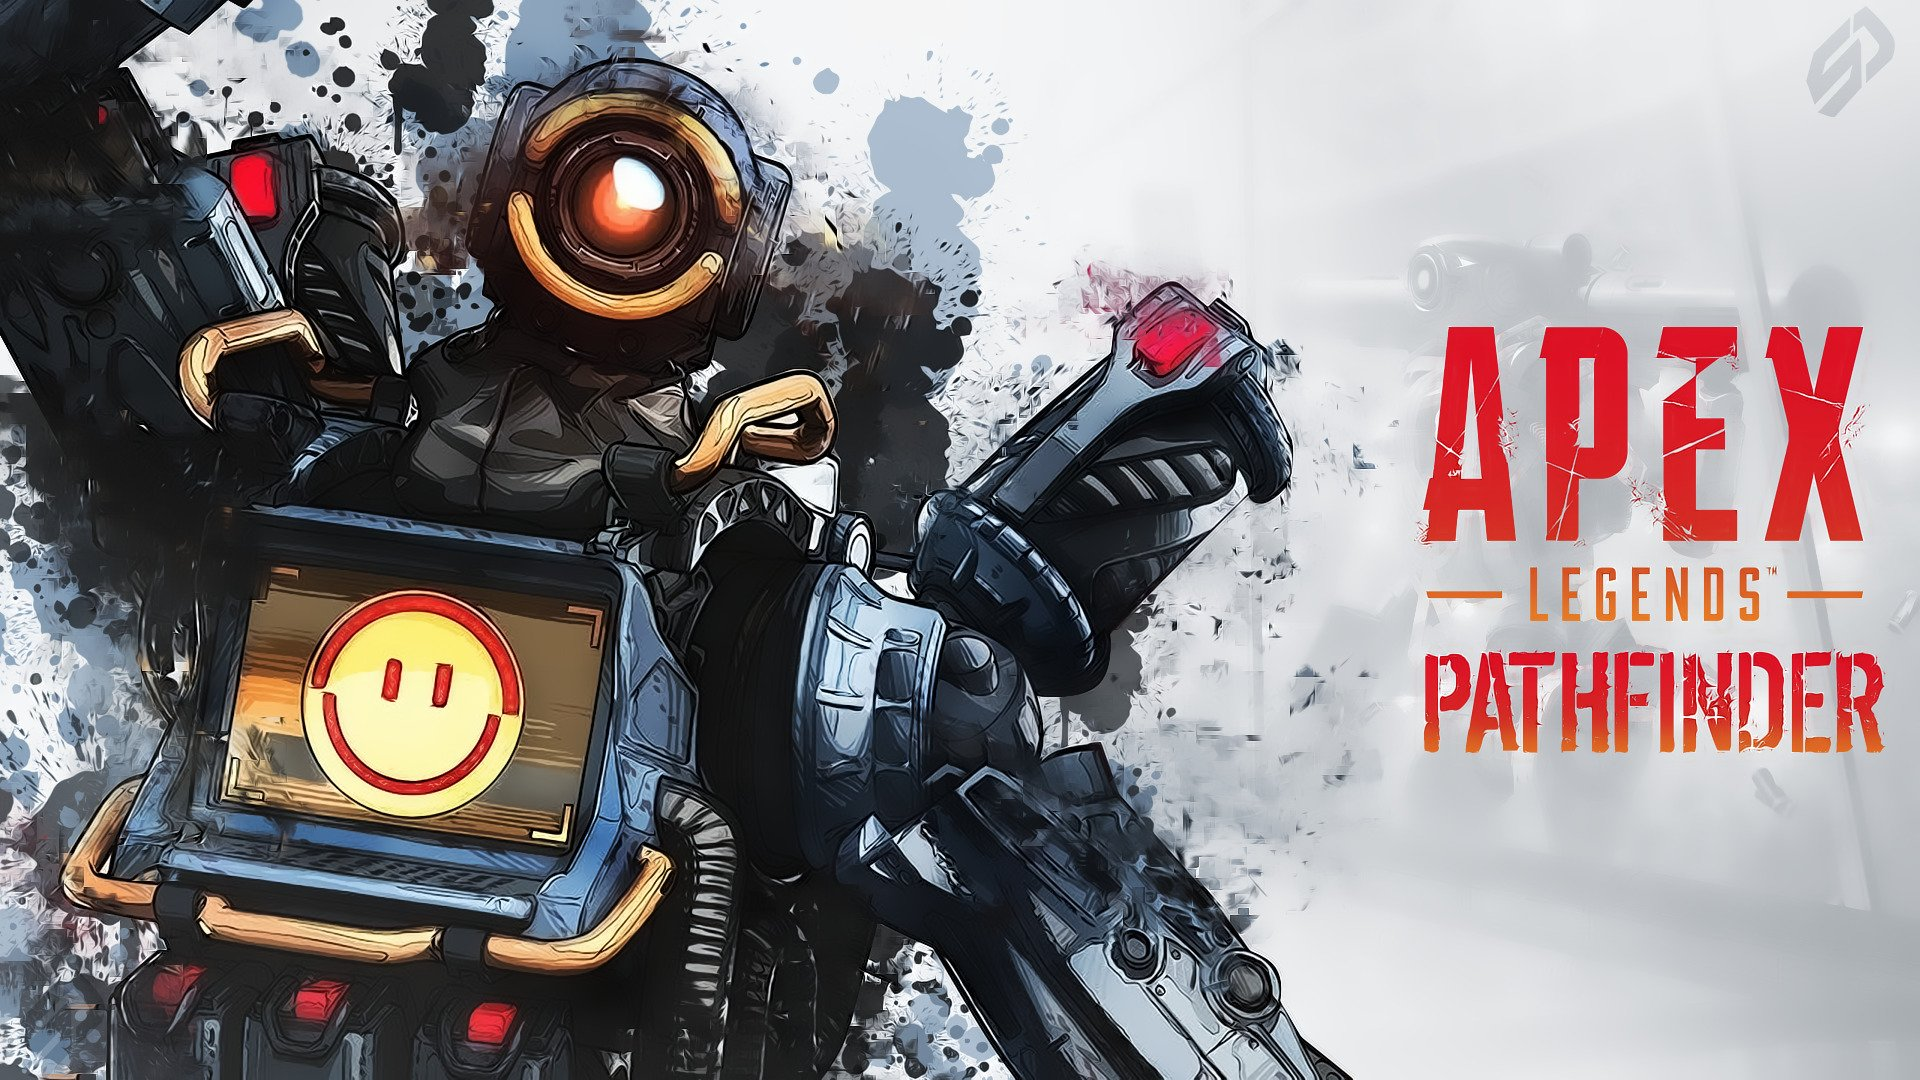 Pathfinder Apex Legends Game Robot by ShokoDesign 4537 Wallpapers 1920x1080